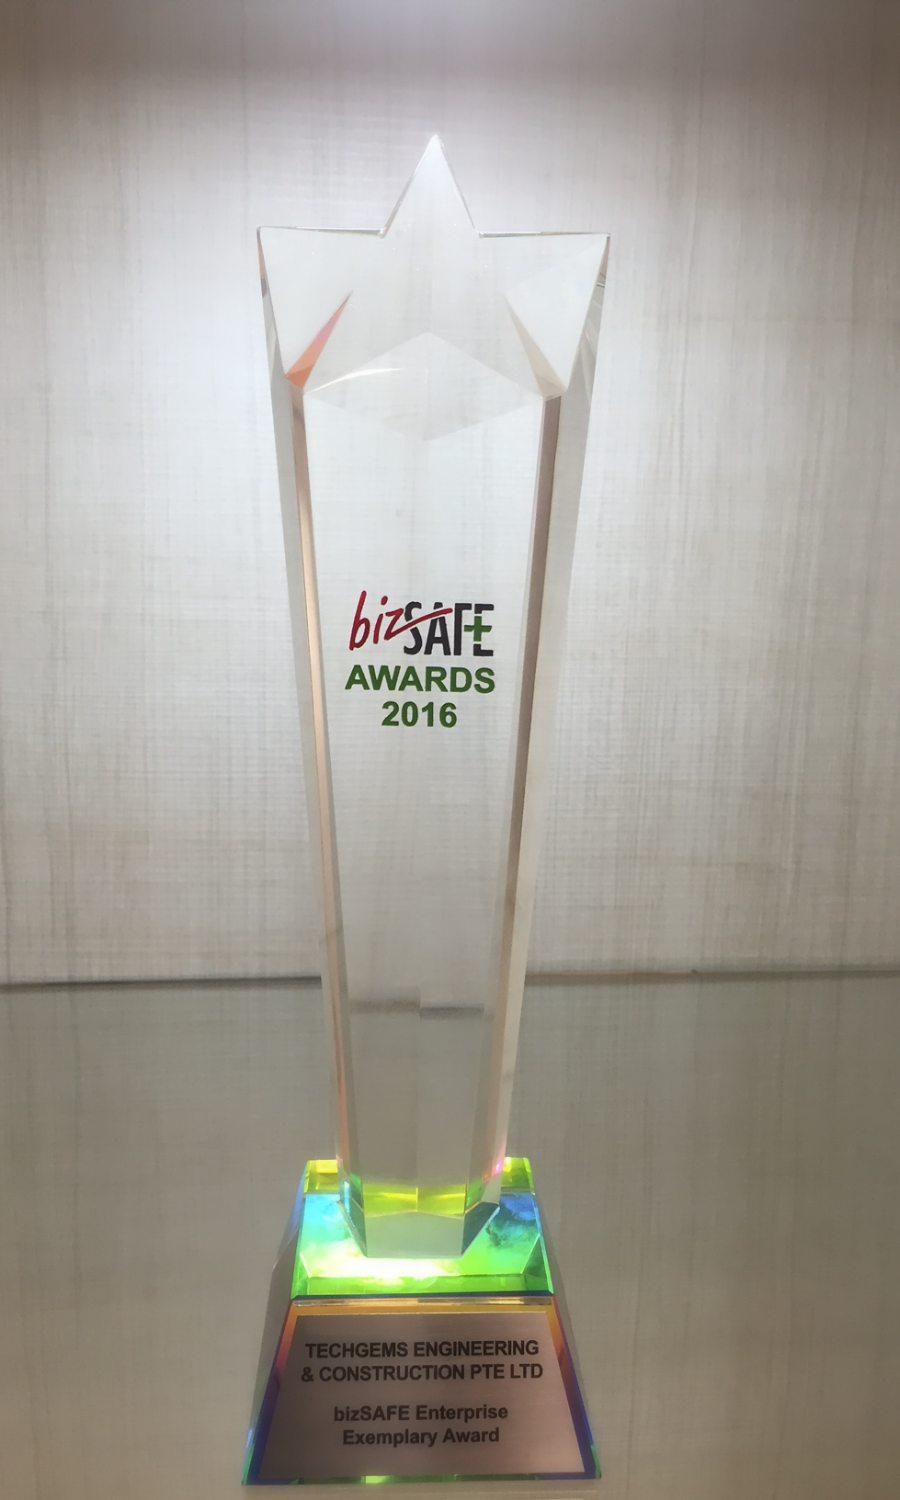 bizSAFE Awards 2016